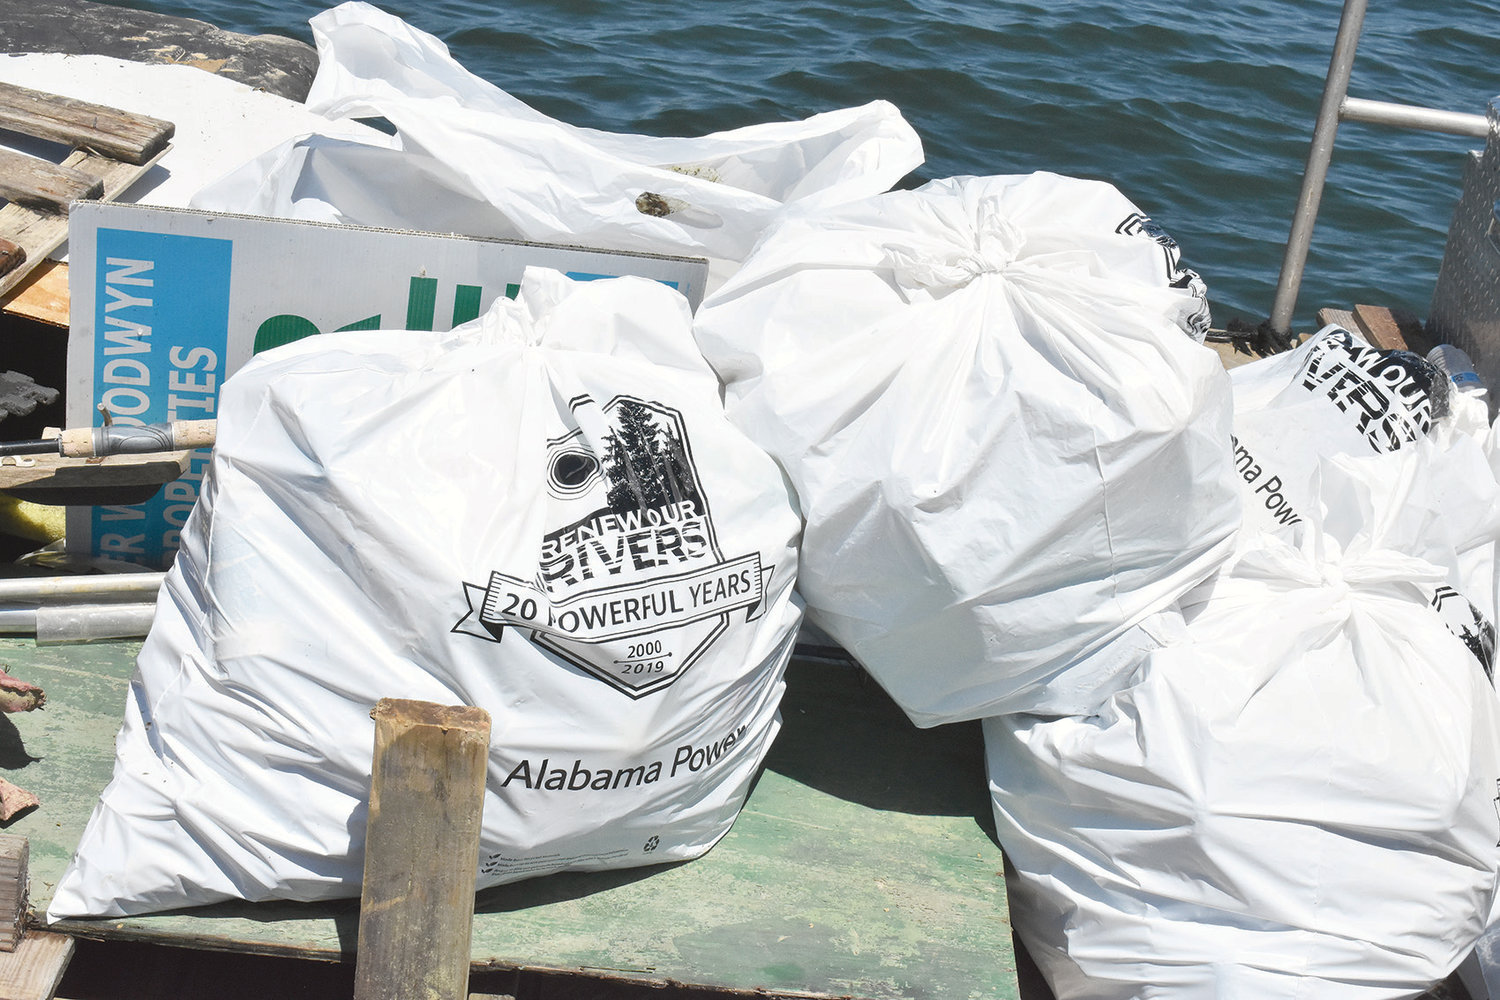 This is some of the garbage and litter picked up at Smith Lake Monday as part of a two-day cleanup that continues today.